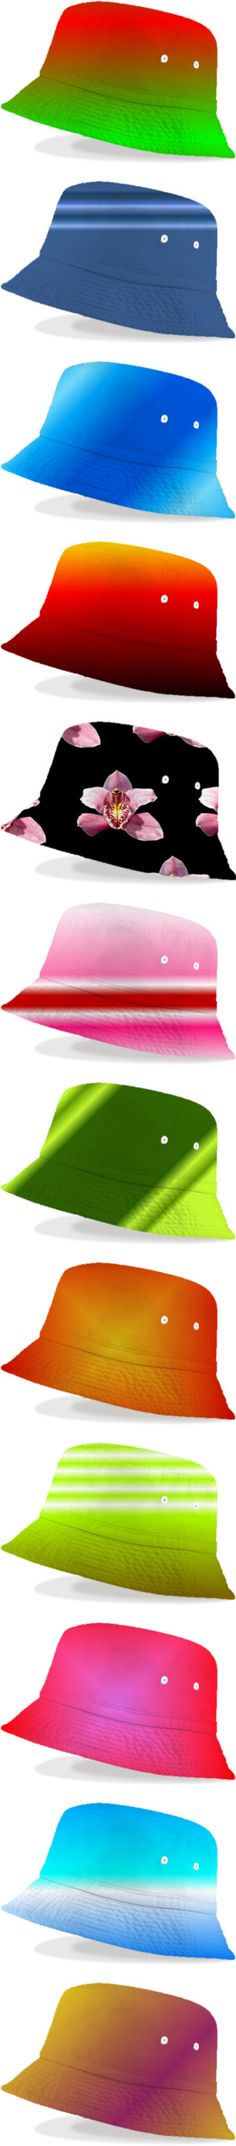 HATS! PLEASE CLICK FOR MORE. by artist4god-rose-santuci-sofranko on Polyvore featuring polyvore, fashion, accessories, hats, bucket hat, cap, clothing, ocean, blue bucket hat, cap hats, nautical hats, rose hat, fishing hats, sea, rosebud hats, print bucket hat, print hats, fisherman hat, pattern hats, pink bucket hat, pink hat, bucket hats, floral, flowers, garden, rose, floral fisherman hat, floral hat, flower print hat, tree, mens, men's accessories, men's hats, women, coloring, rainbow…